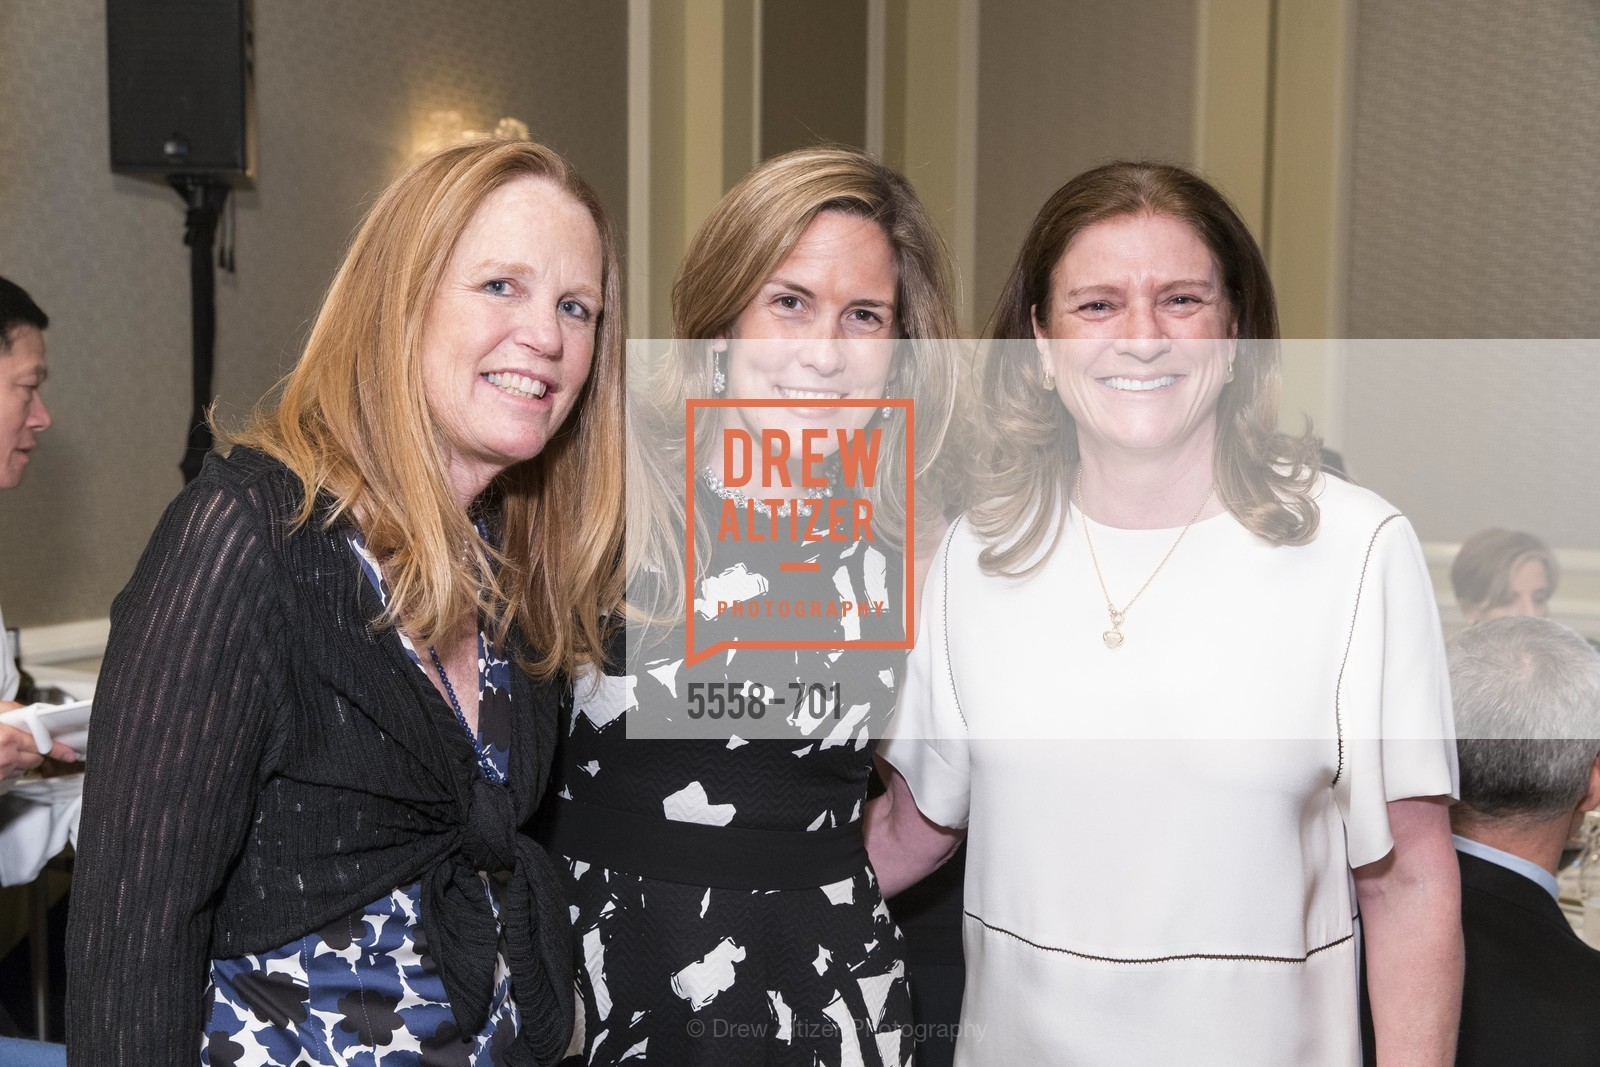 Lindsay Hower, Mimi Kingsley, SUMMER SEARCH San Francisco 25th Anniversary, US, May 6th, 2015,Drew Altizer, Drew Altizer Photography, full-service agency, private events, San Francisco photographer, photographer california